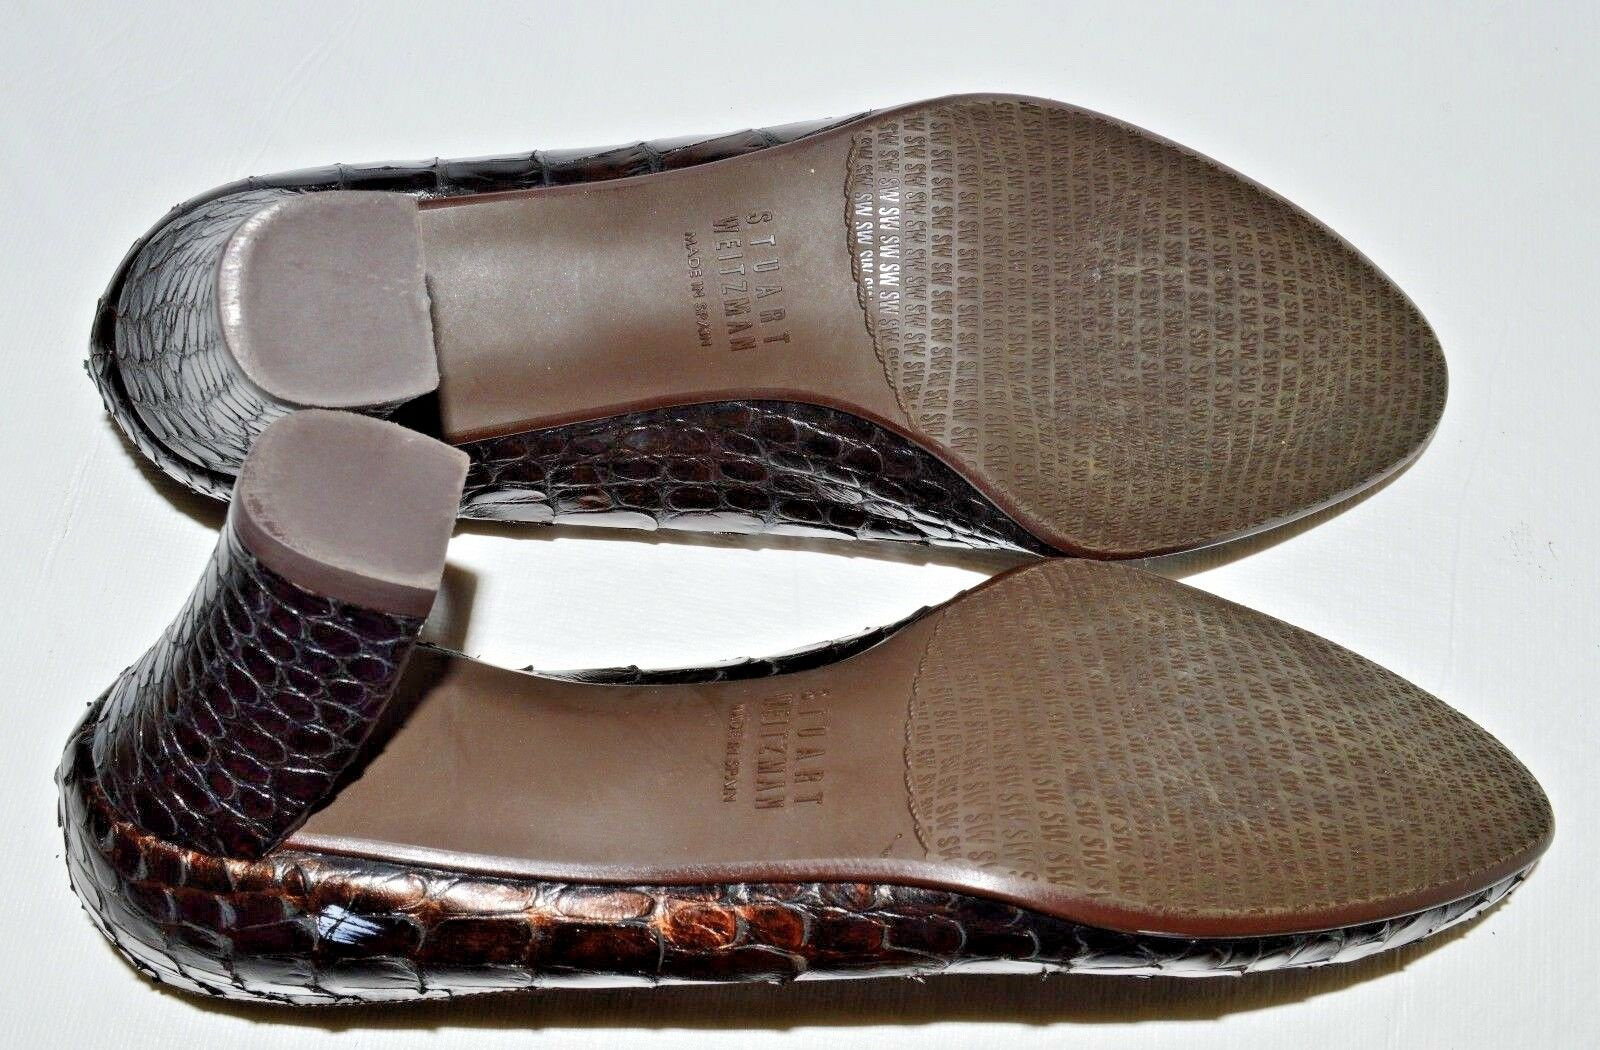 STUART WEITZMAN SZ 6 M BROWN METALLIC COPPER LEATHER LEATHER LEATHER PUMPS HEELS DRESS SHOES 9ae9bd